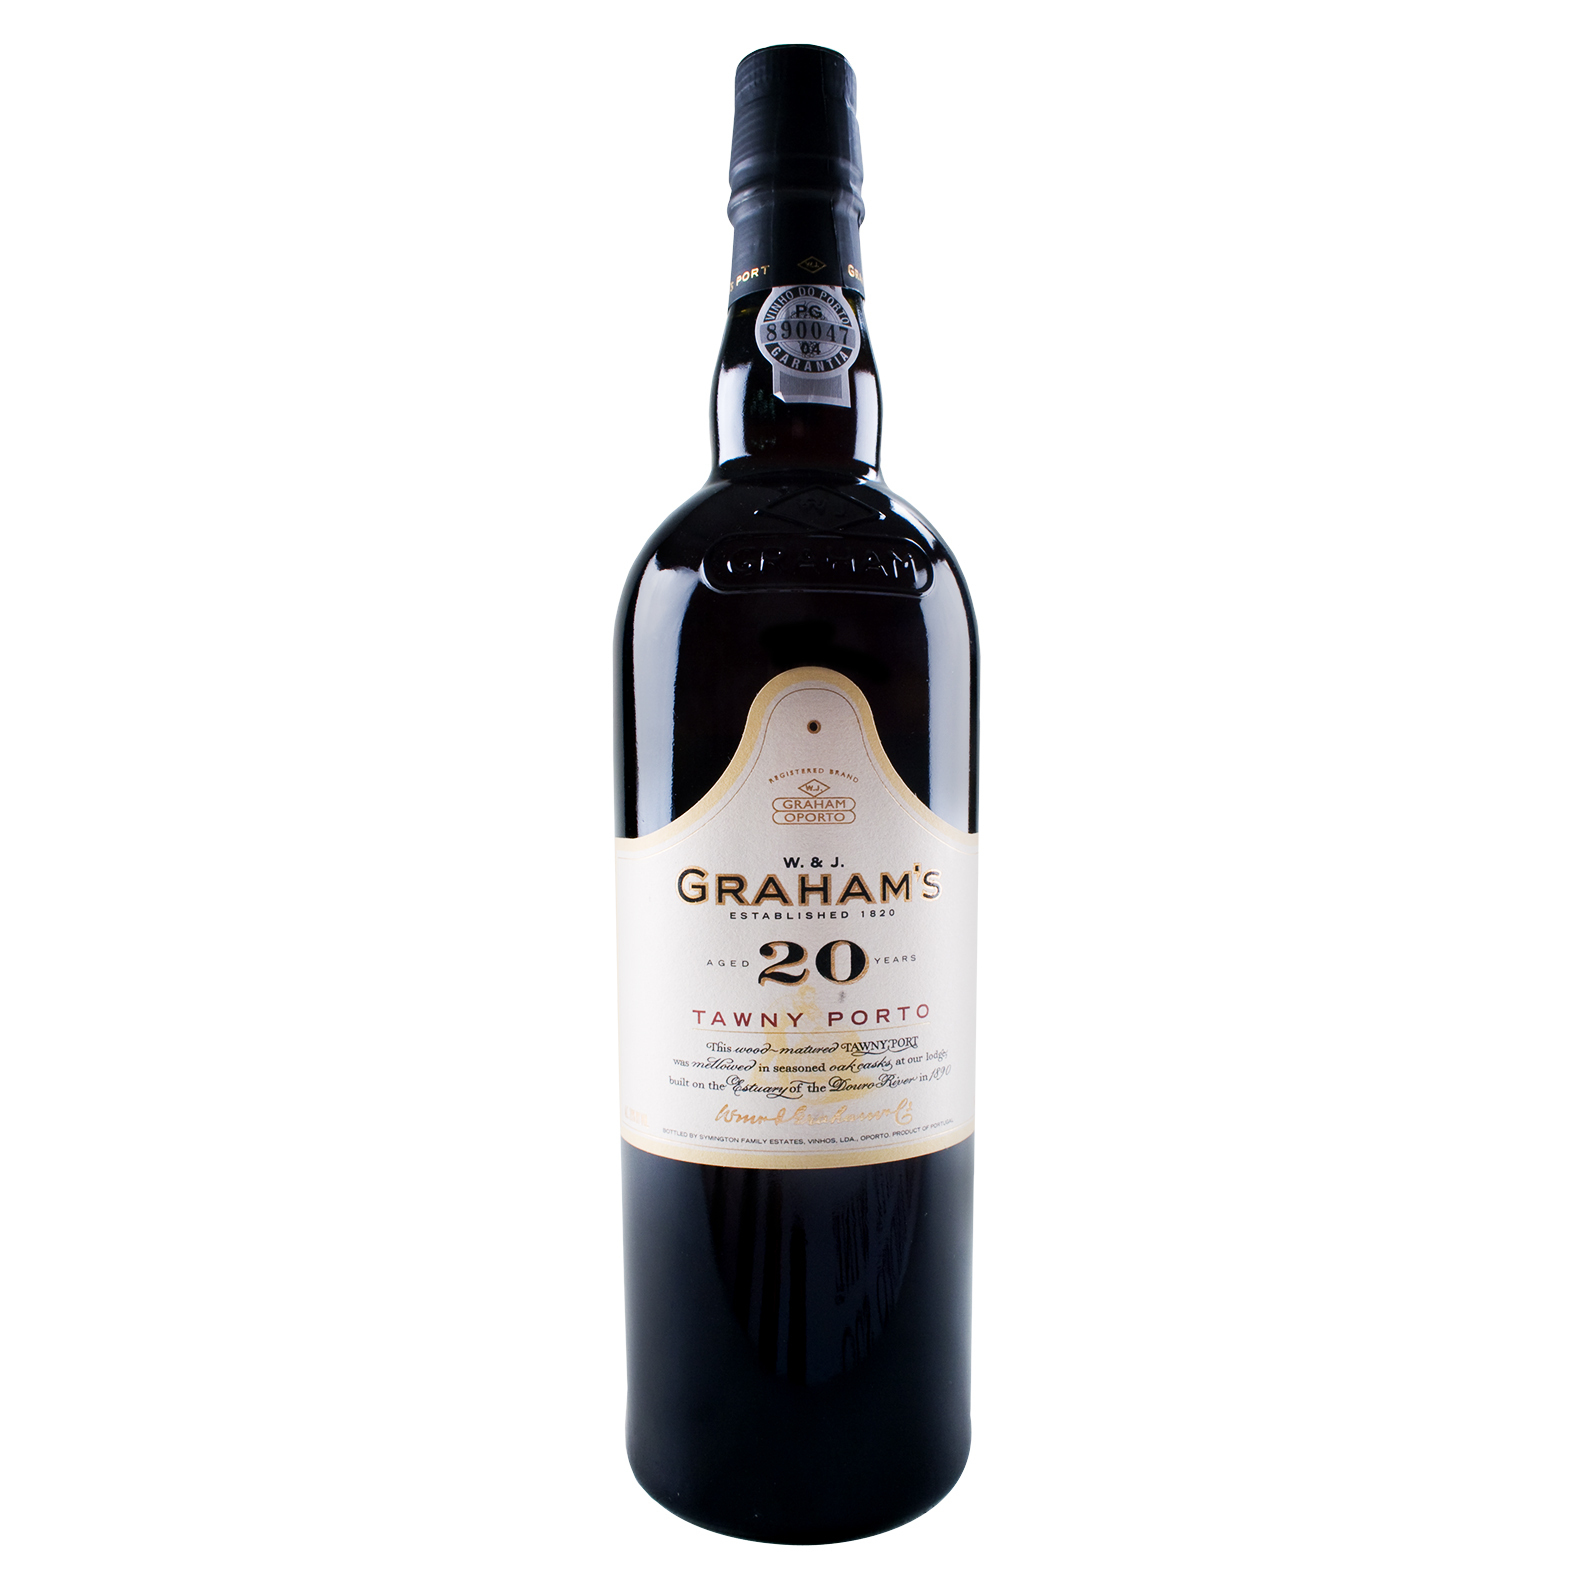 Graham's Tawny 20 Years - Porto - 0.75 - W. & J. Graham's